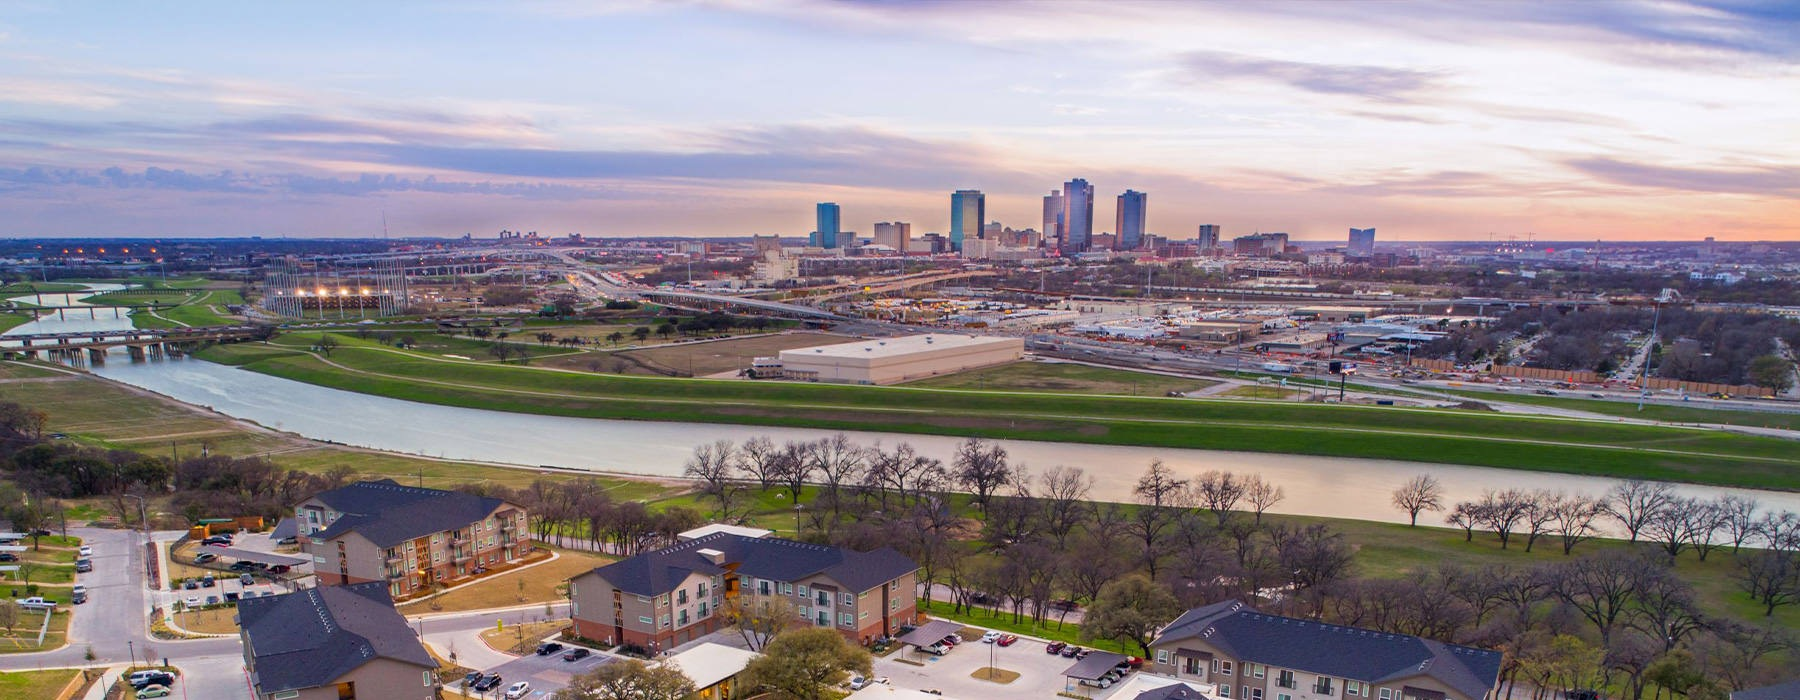 The Scenic at River East apartments with a view of downtown Fort Worth